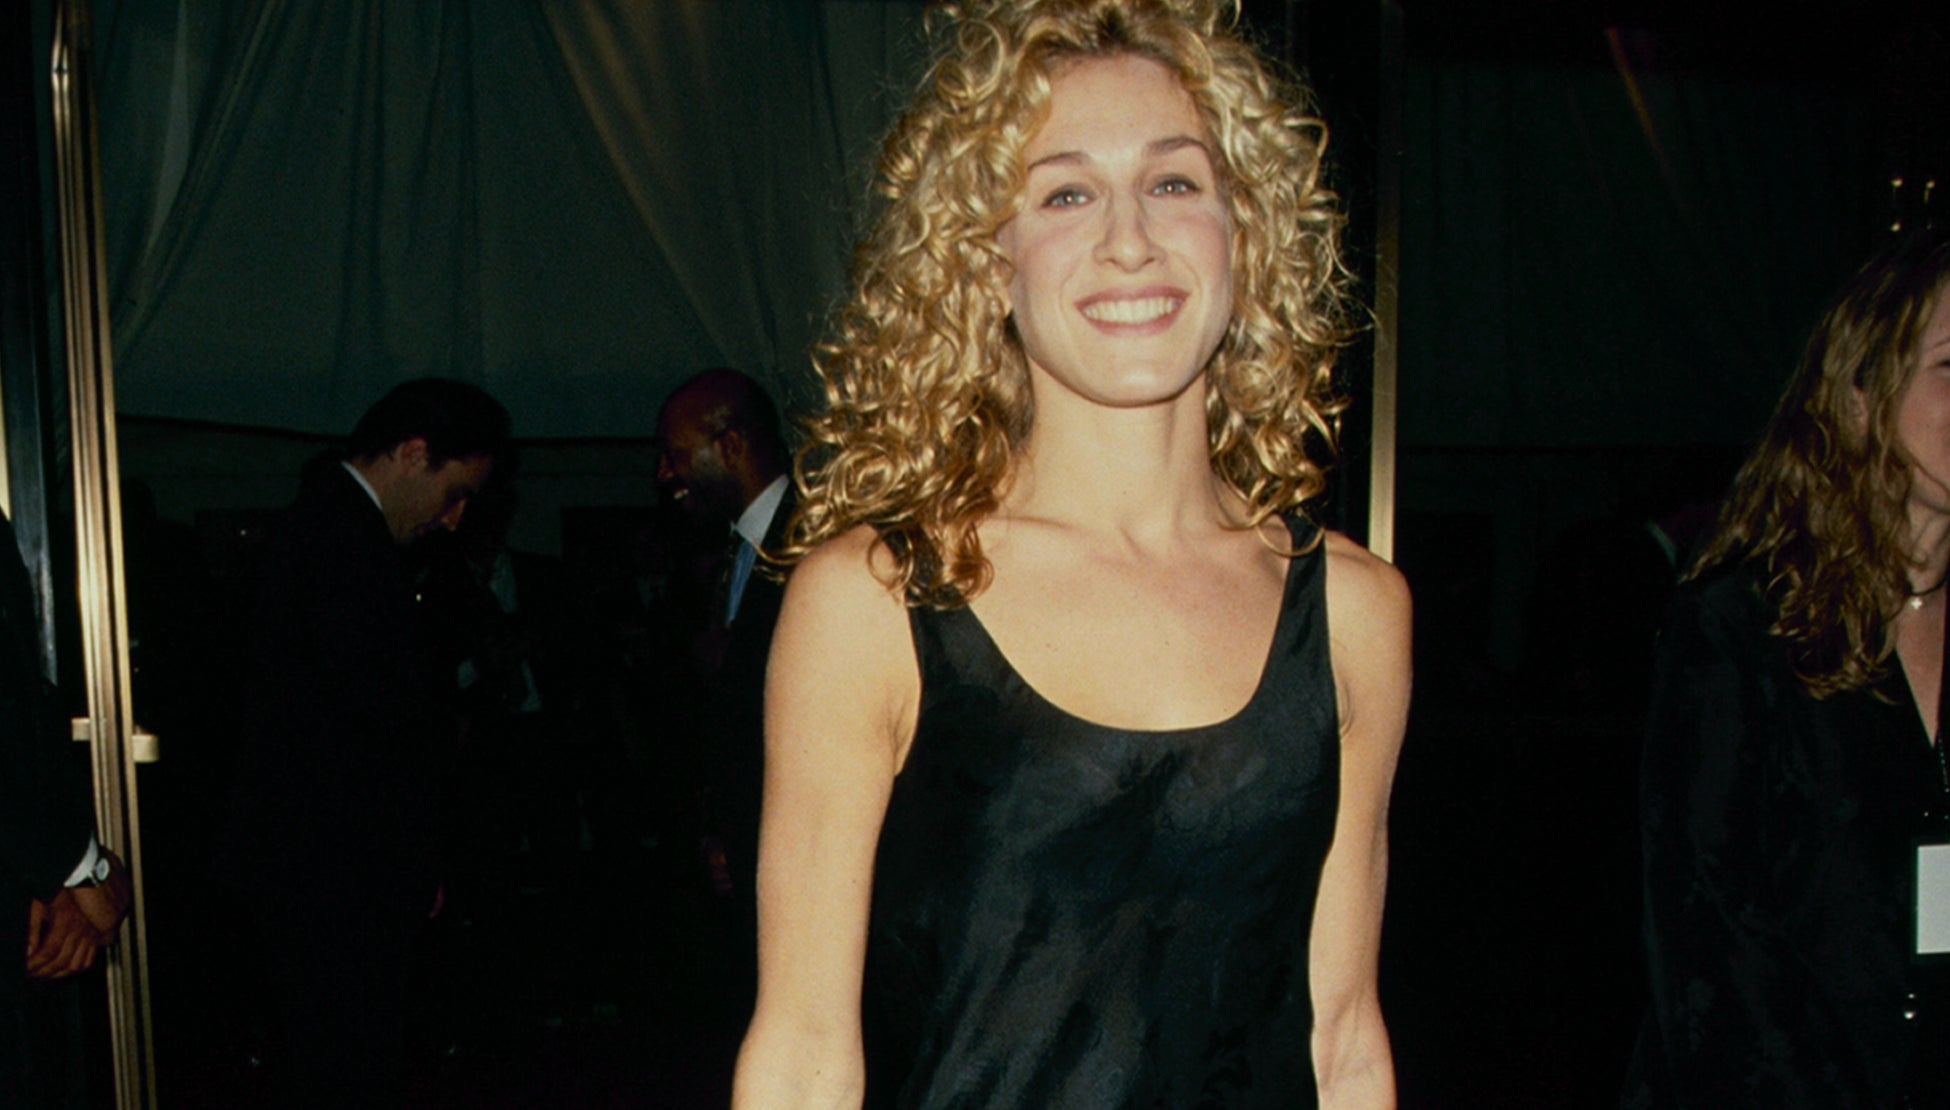 Sarah Jessica Parker, kolem roku 1995 Autor: Getty Images - Time & Life Pictures